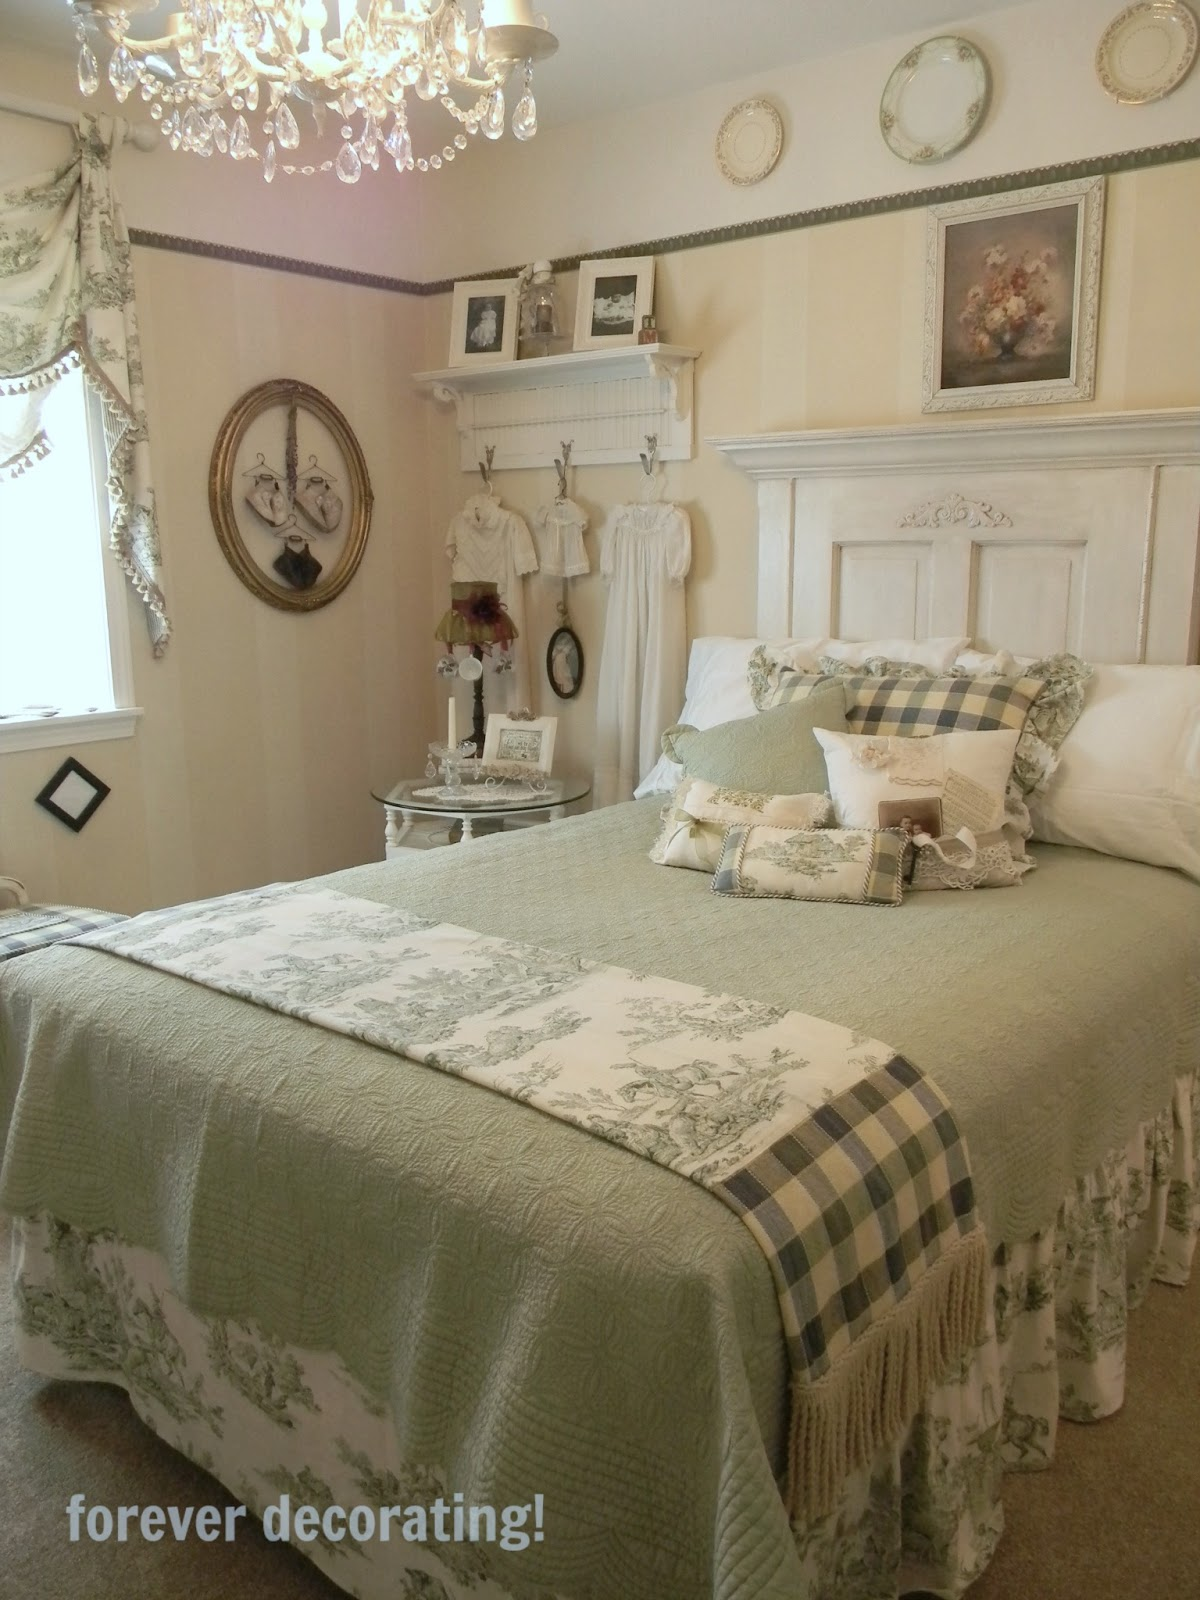 Mackenzie Bedroom Set In White: Forever Decorating!: Guest Bedroom Reveal